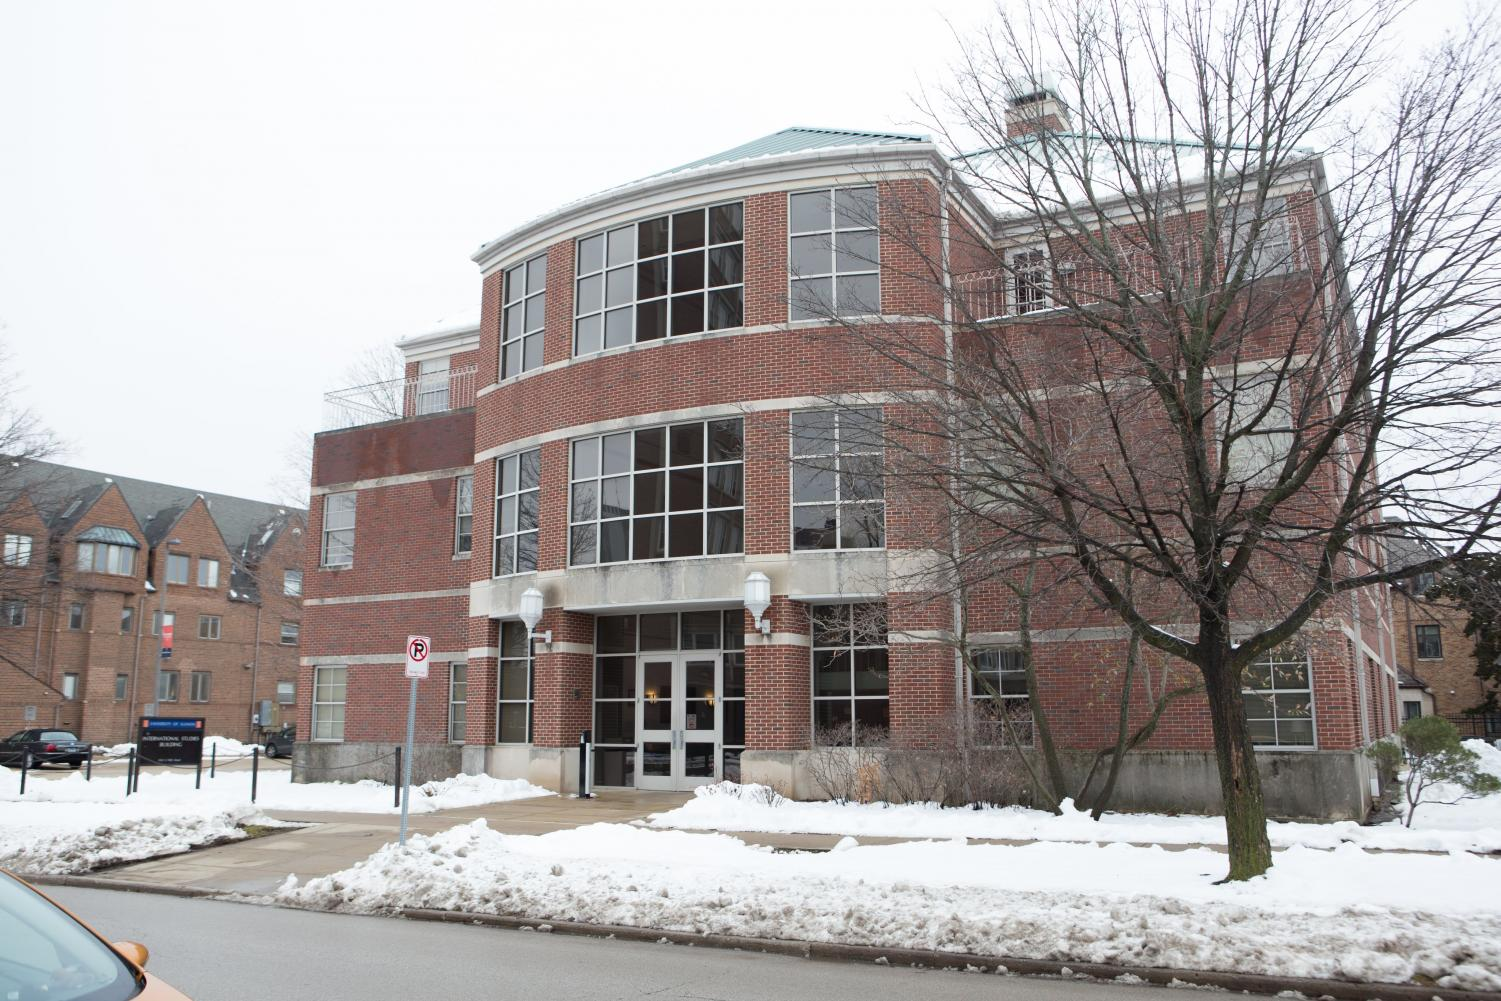 The International Studies building contains many centers for international study including the Center for Latin American and Caribbean Studies, the Center for South Asian and Middle Eastern Studies, and the Center for African Studies.